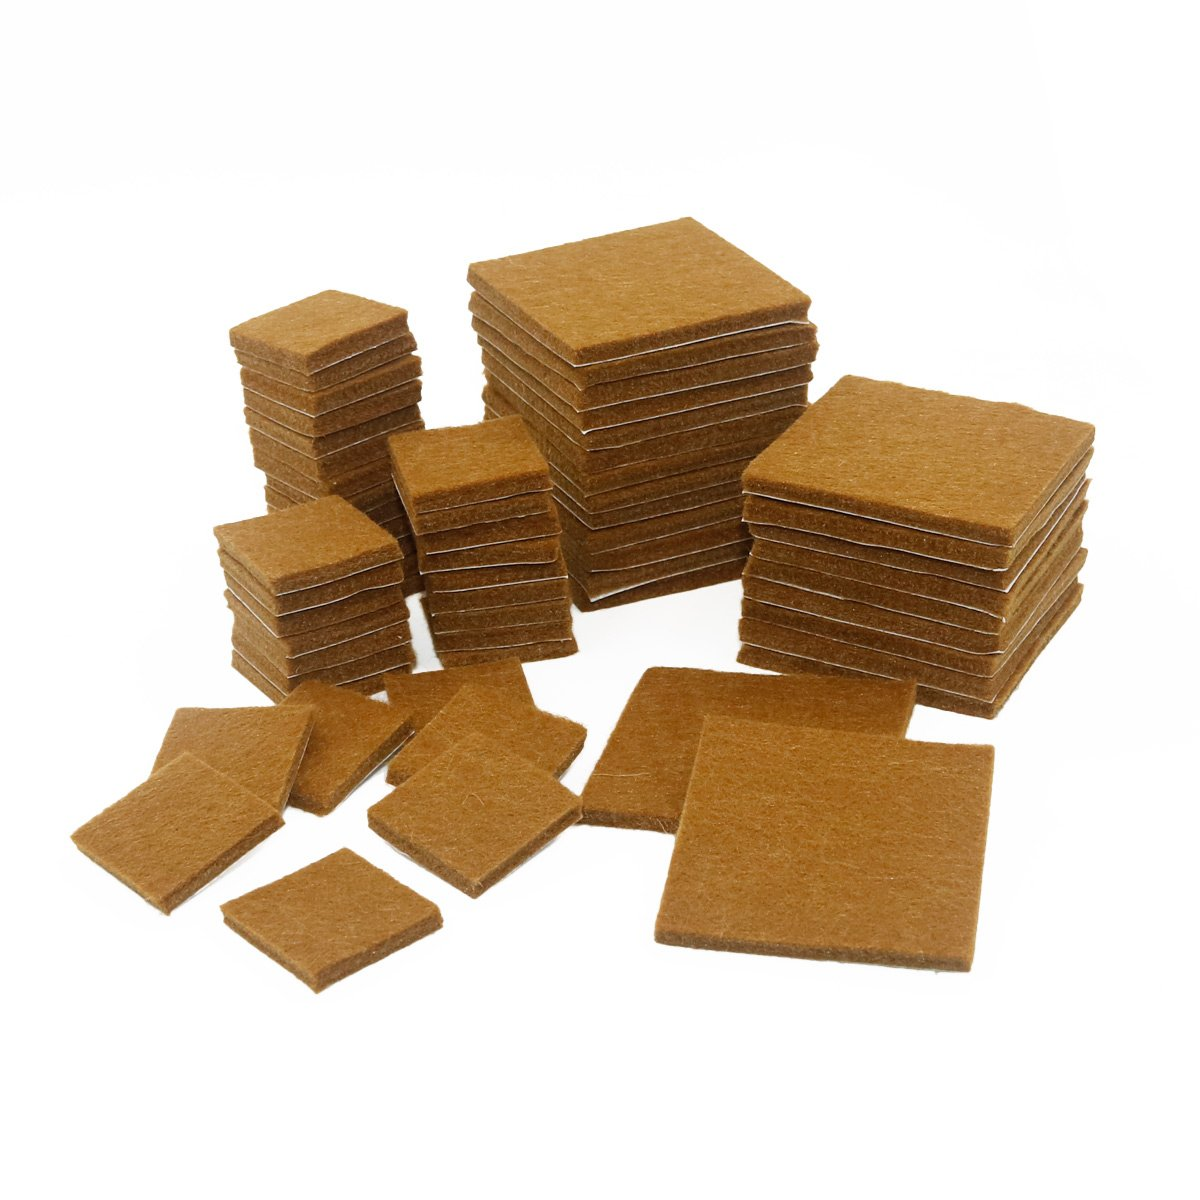 Felt chair pads floor protector gurus floor Furniture wood floor protectors